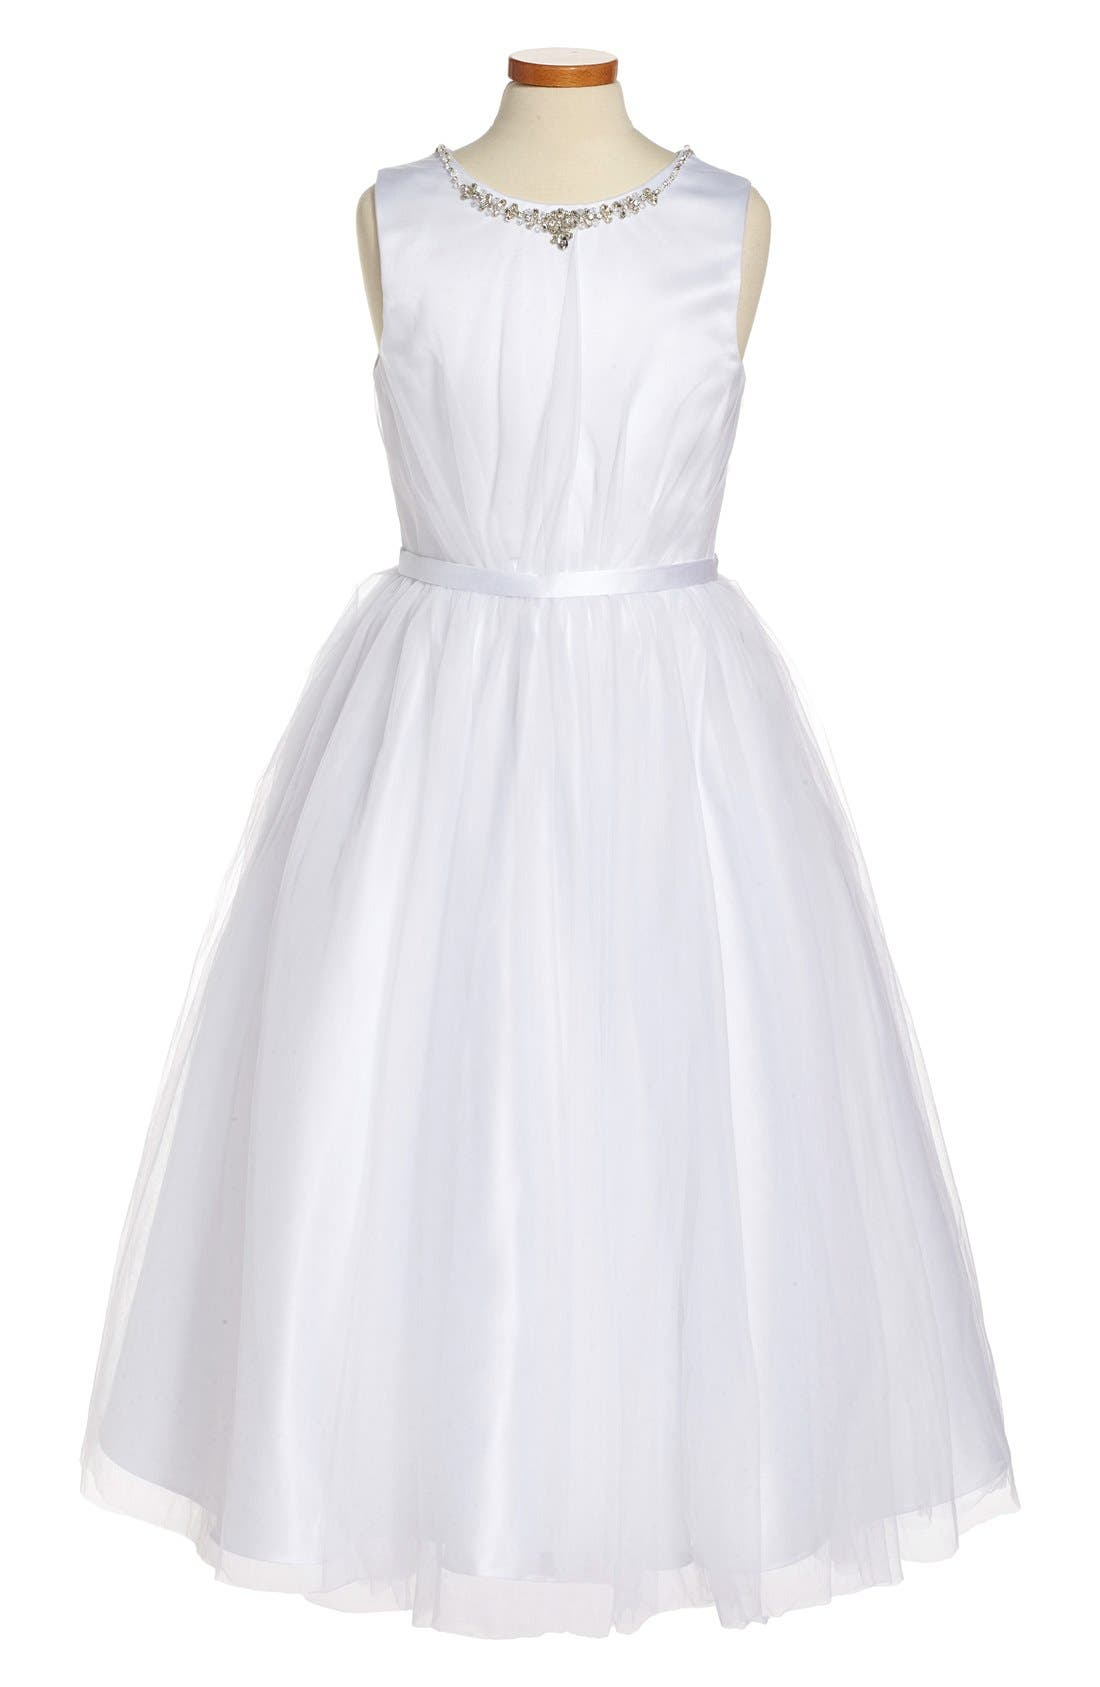 Beaded Satin & Tulle First Communion Dress,                             Main thumbnail 1, color,                             100